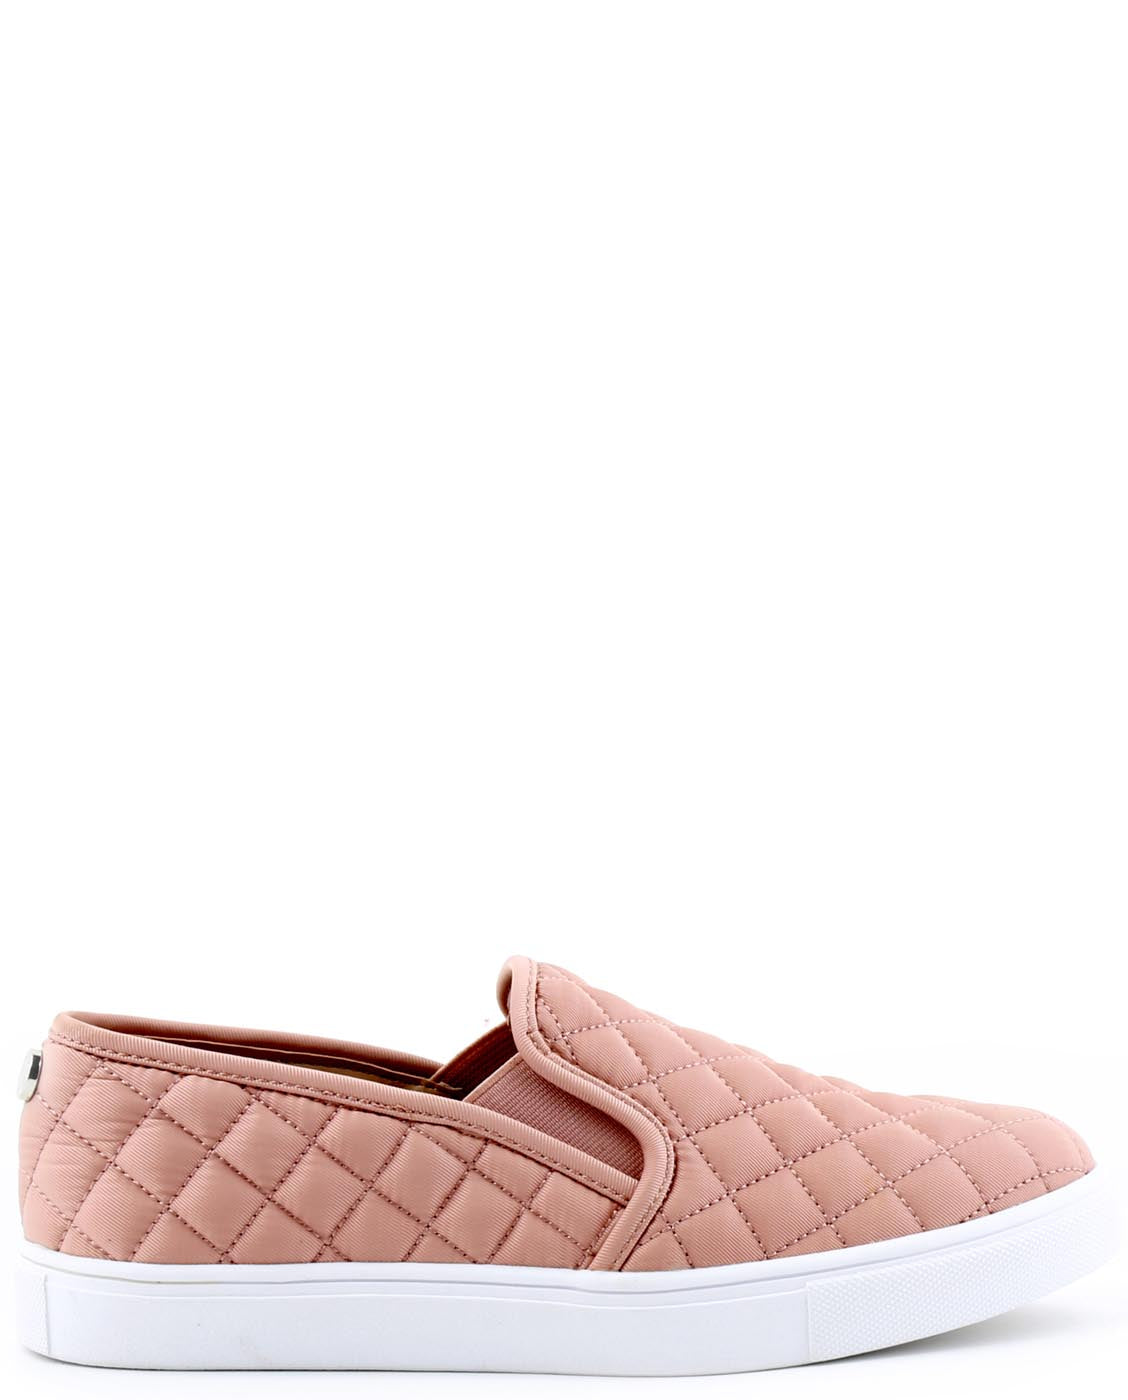 779c5802b84 Steve Madden Quilted Slip On Sneakers - Fashion You Up